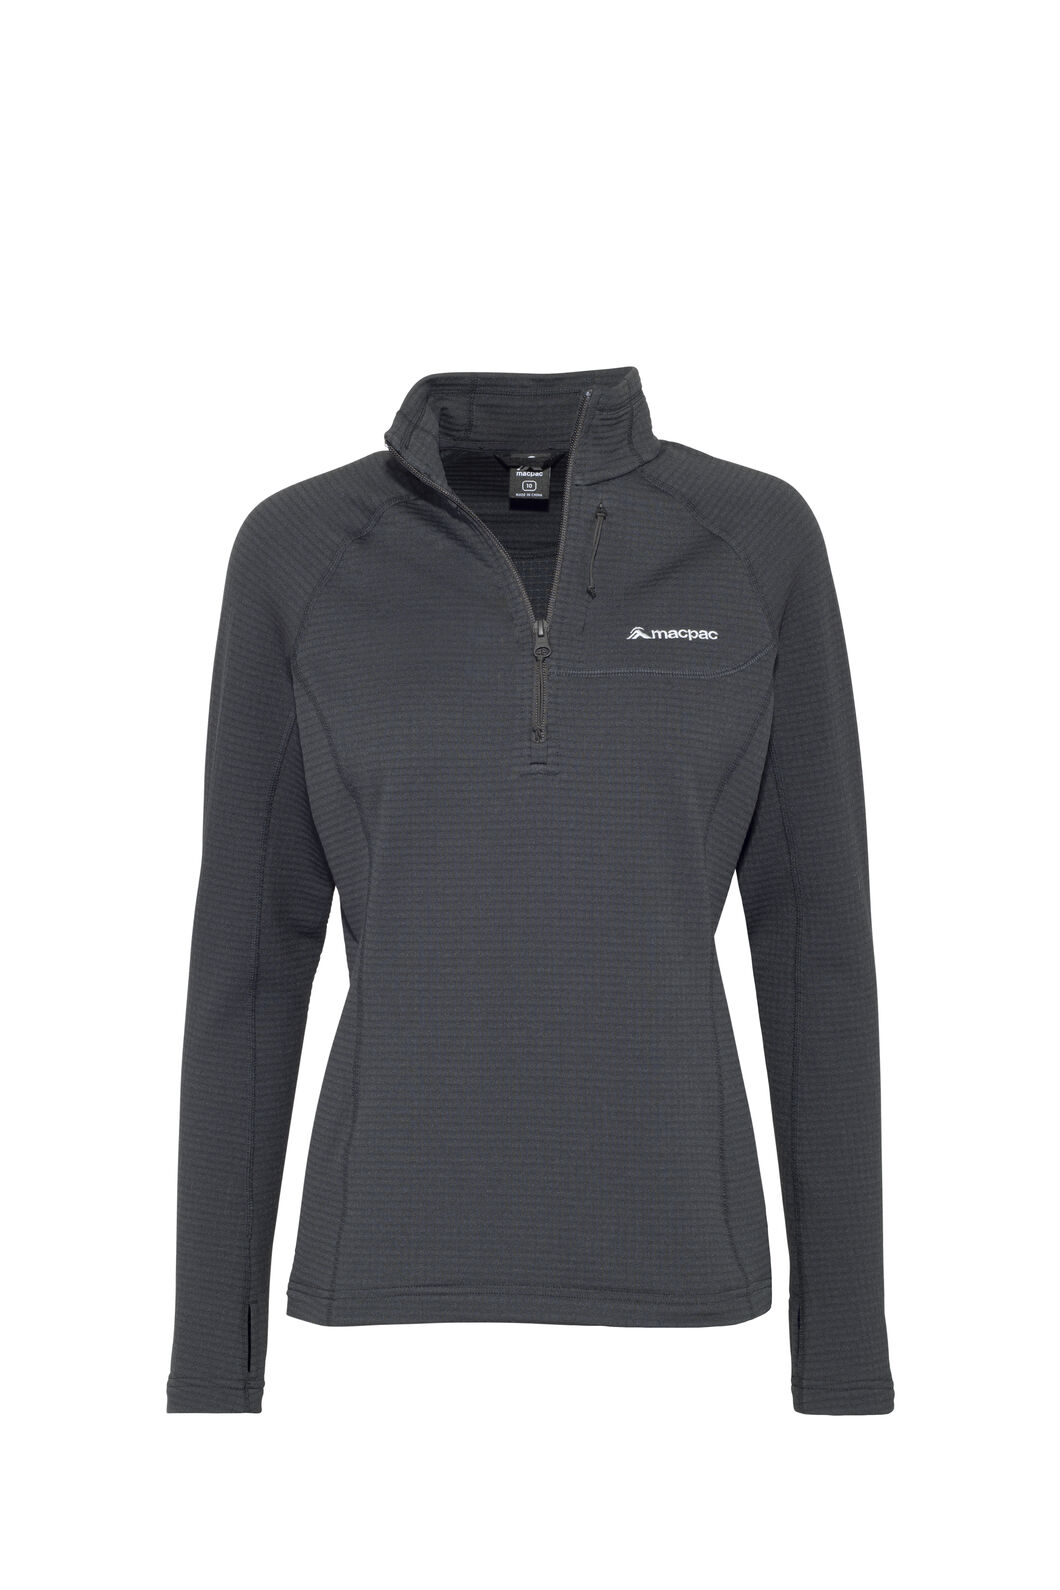 Macpac Ion Polartec® Fleece Half Zip Pullover — Women's, Black, hi-res